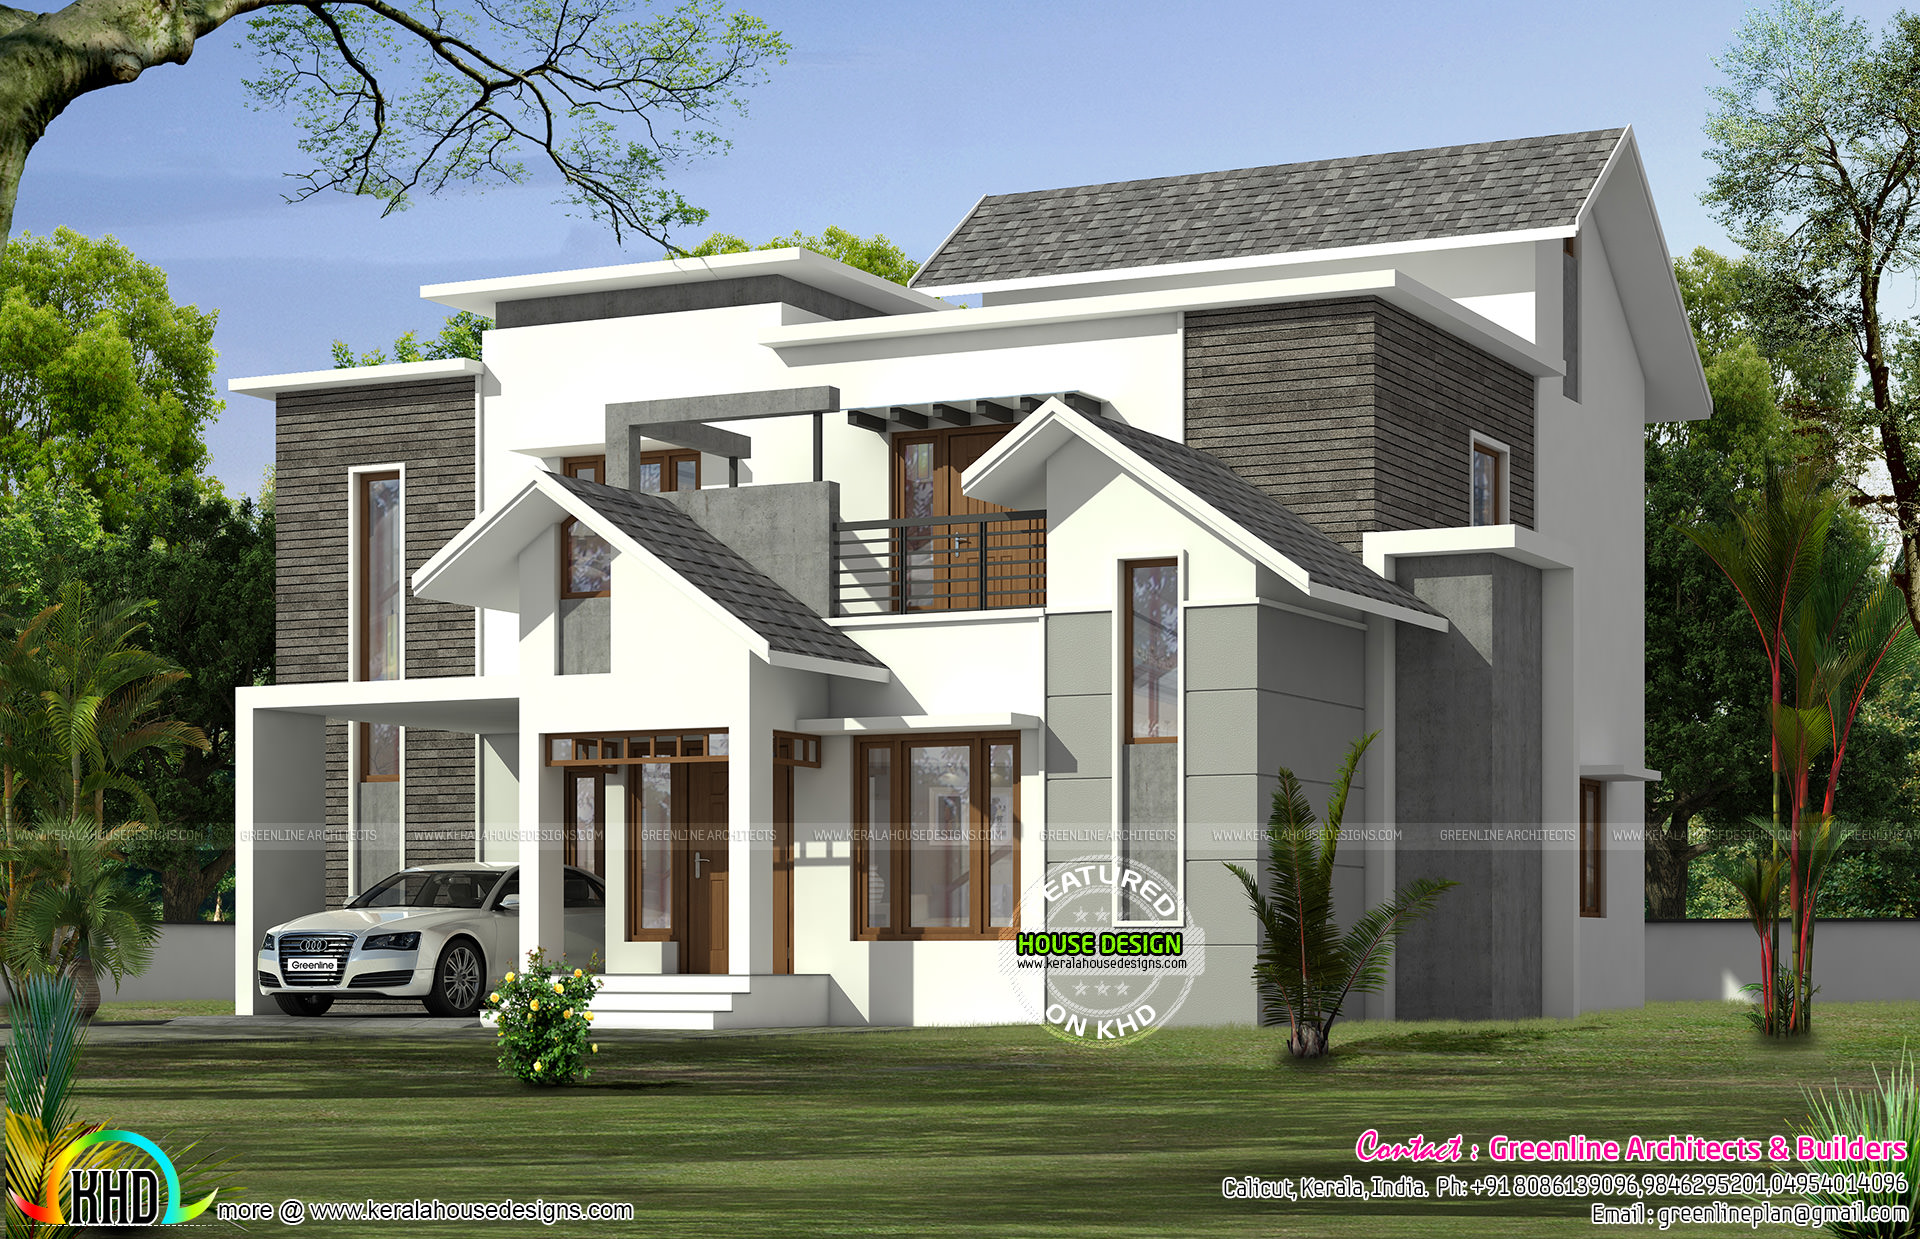 See floor plans read more please follow kerala home design - Design Style Modern See Facility Details Read More Please Follow Kerala Home Design